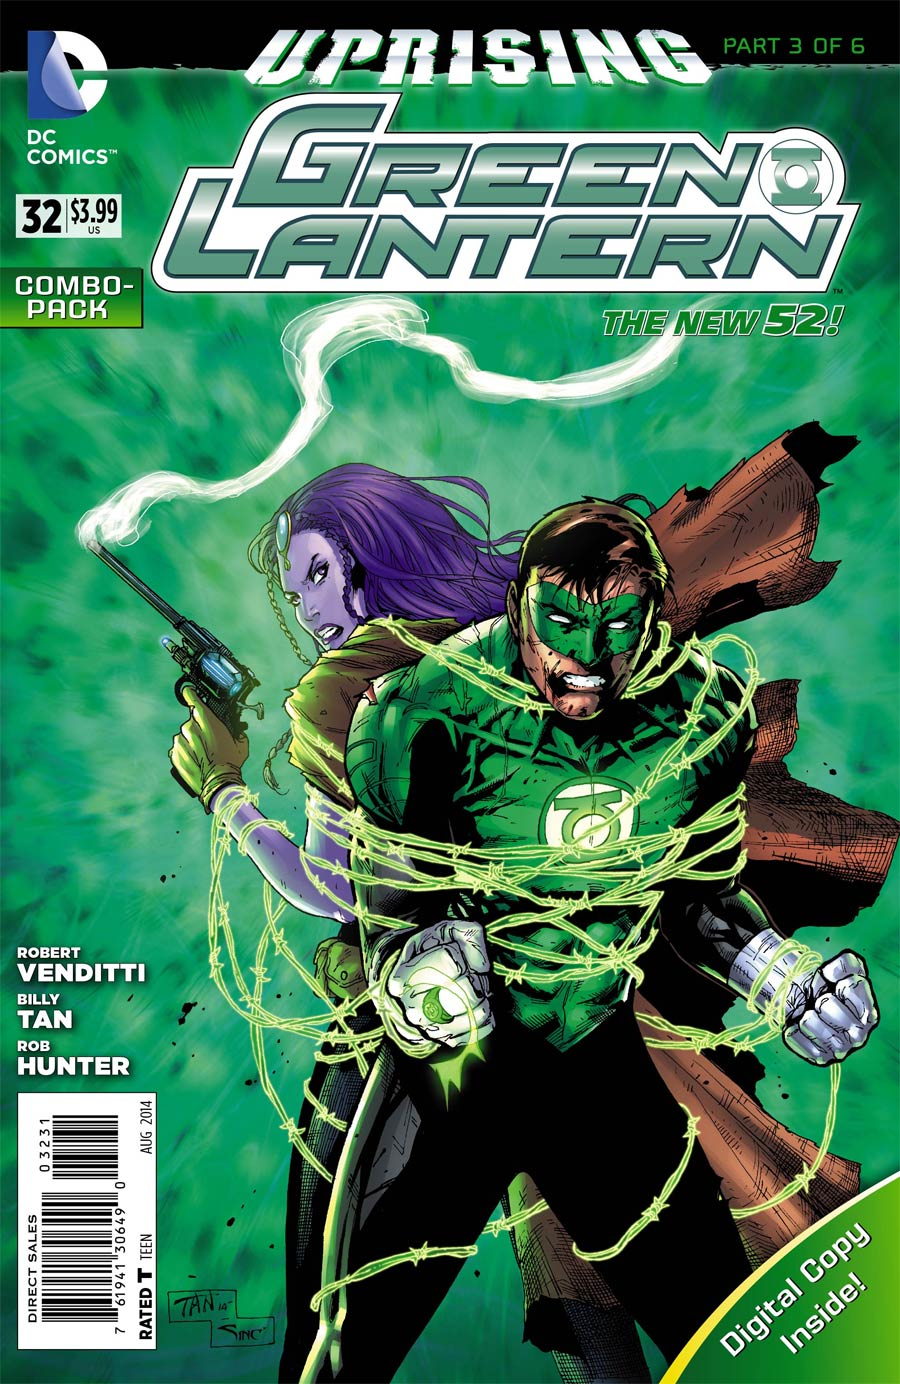 Green Lantern Vol 5 #32 Cover C Combo Pack With Polybag (Uprising Part 3)